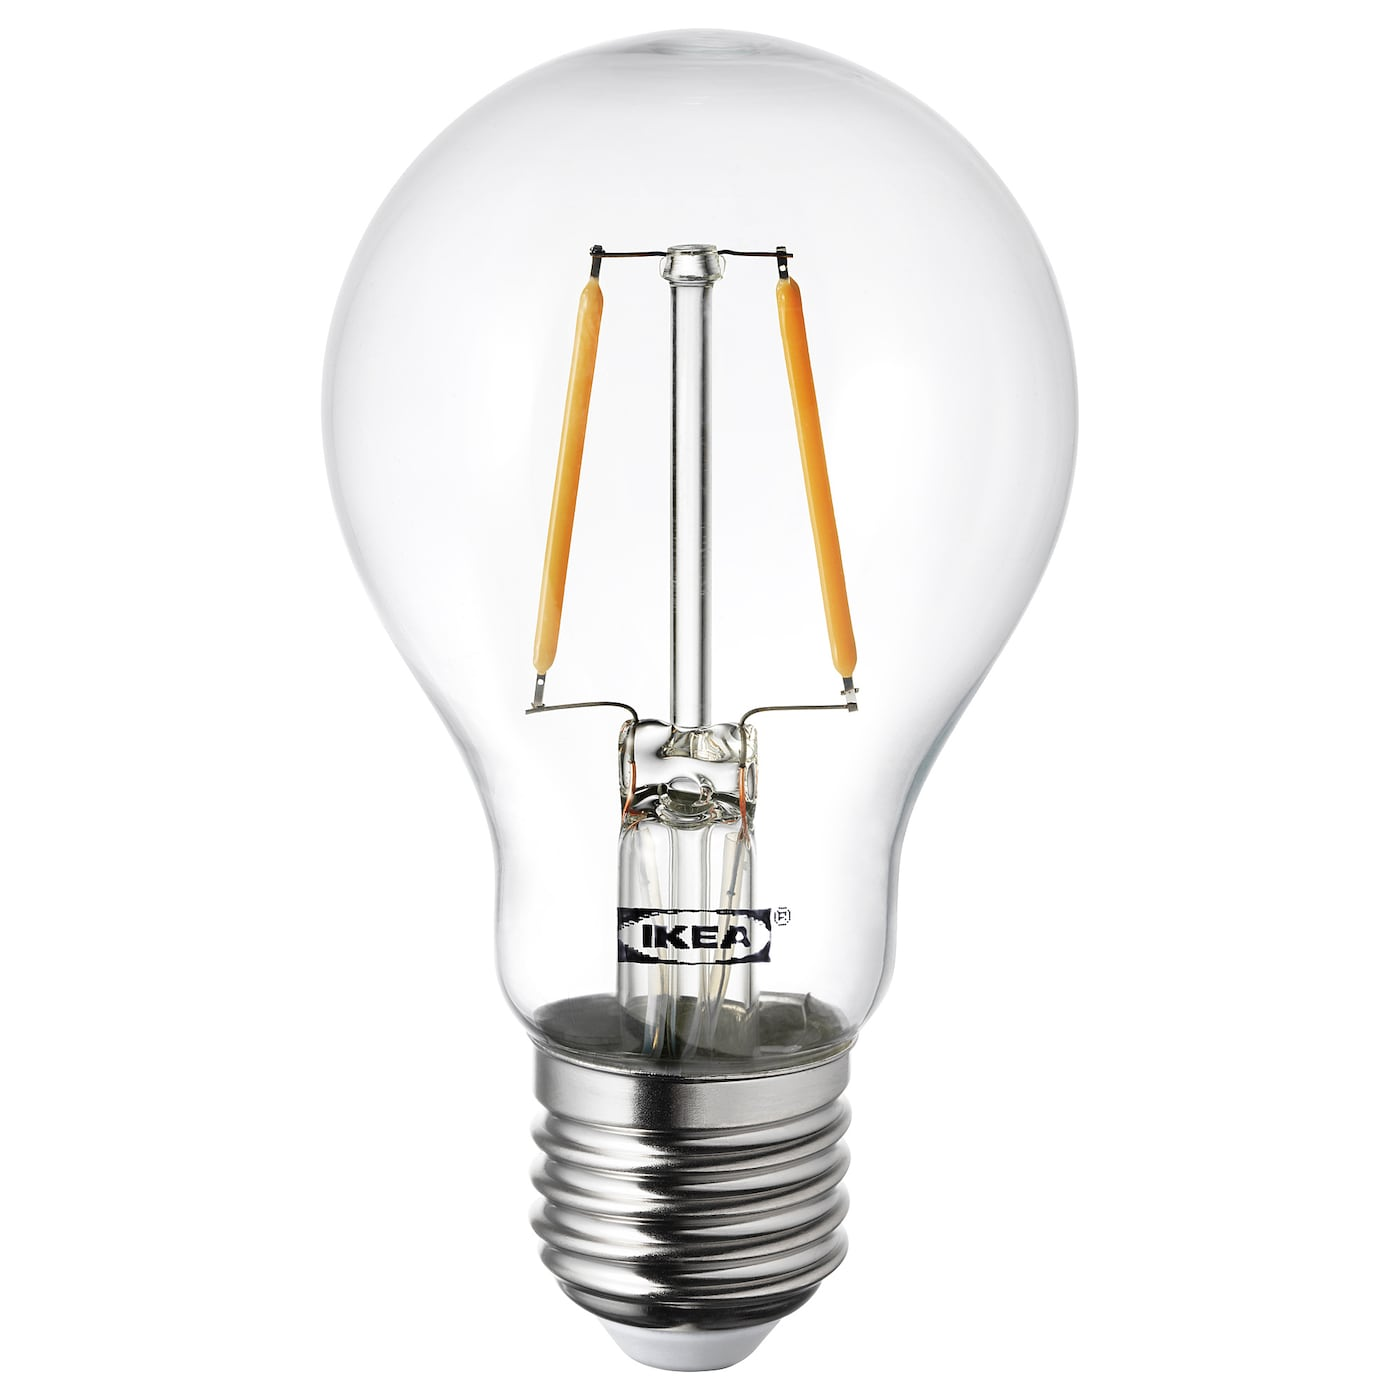 Light Bulbs Led Accessories Ikea Diagram See Image Comparing A Regular Bulb And Fluorescent Lunnom E27 100 Lumen